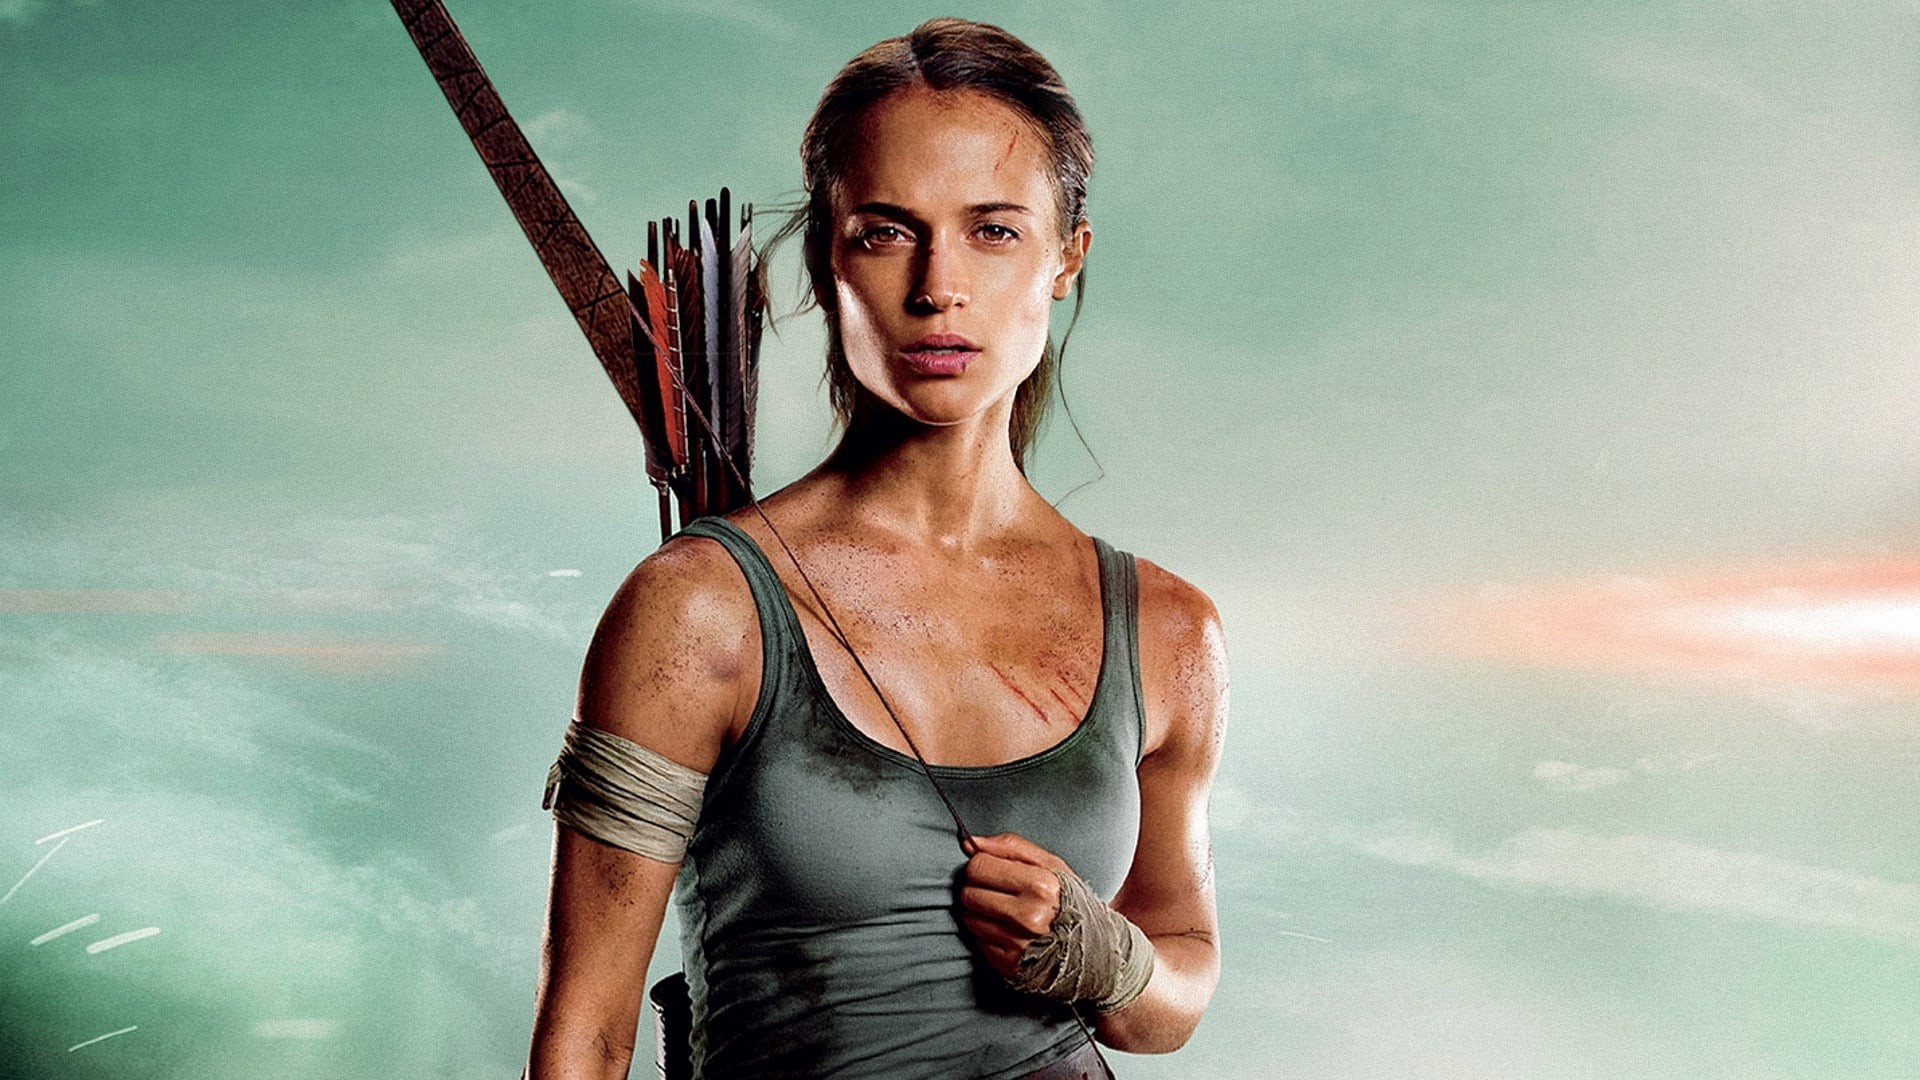 Director Release Date Set For Tomb Raider Sequel Moviefone